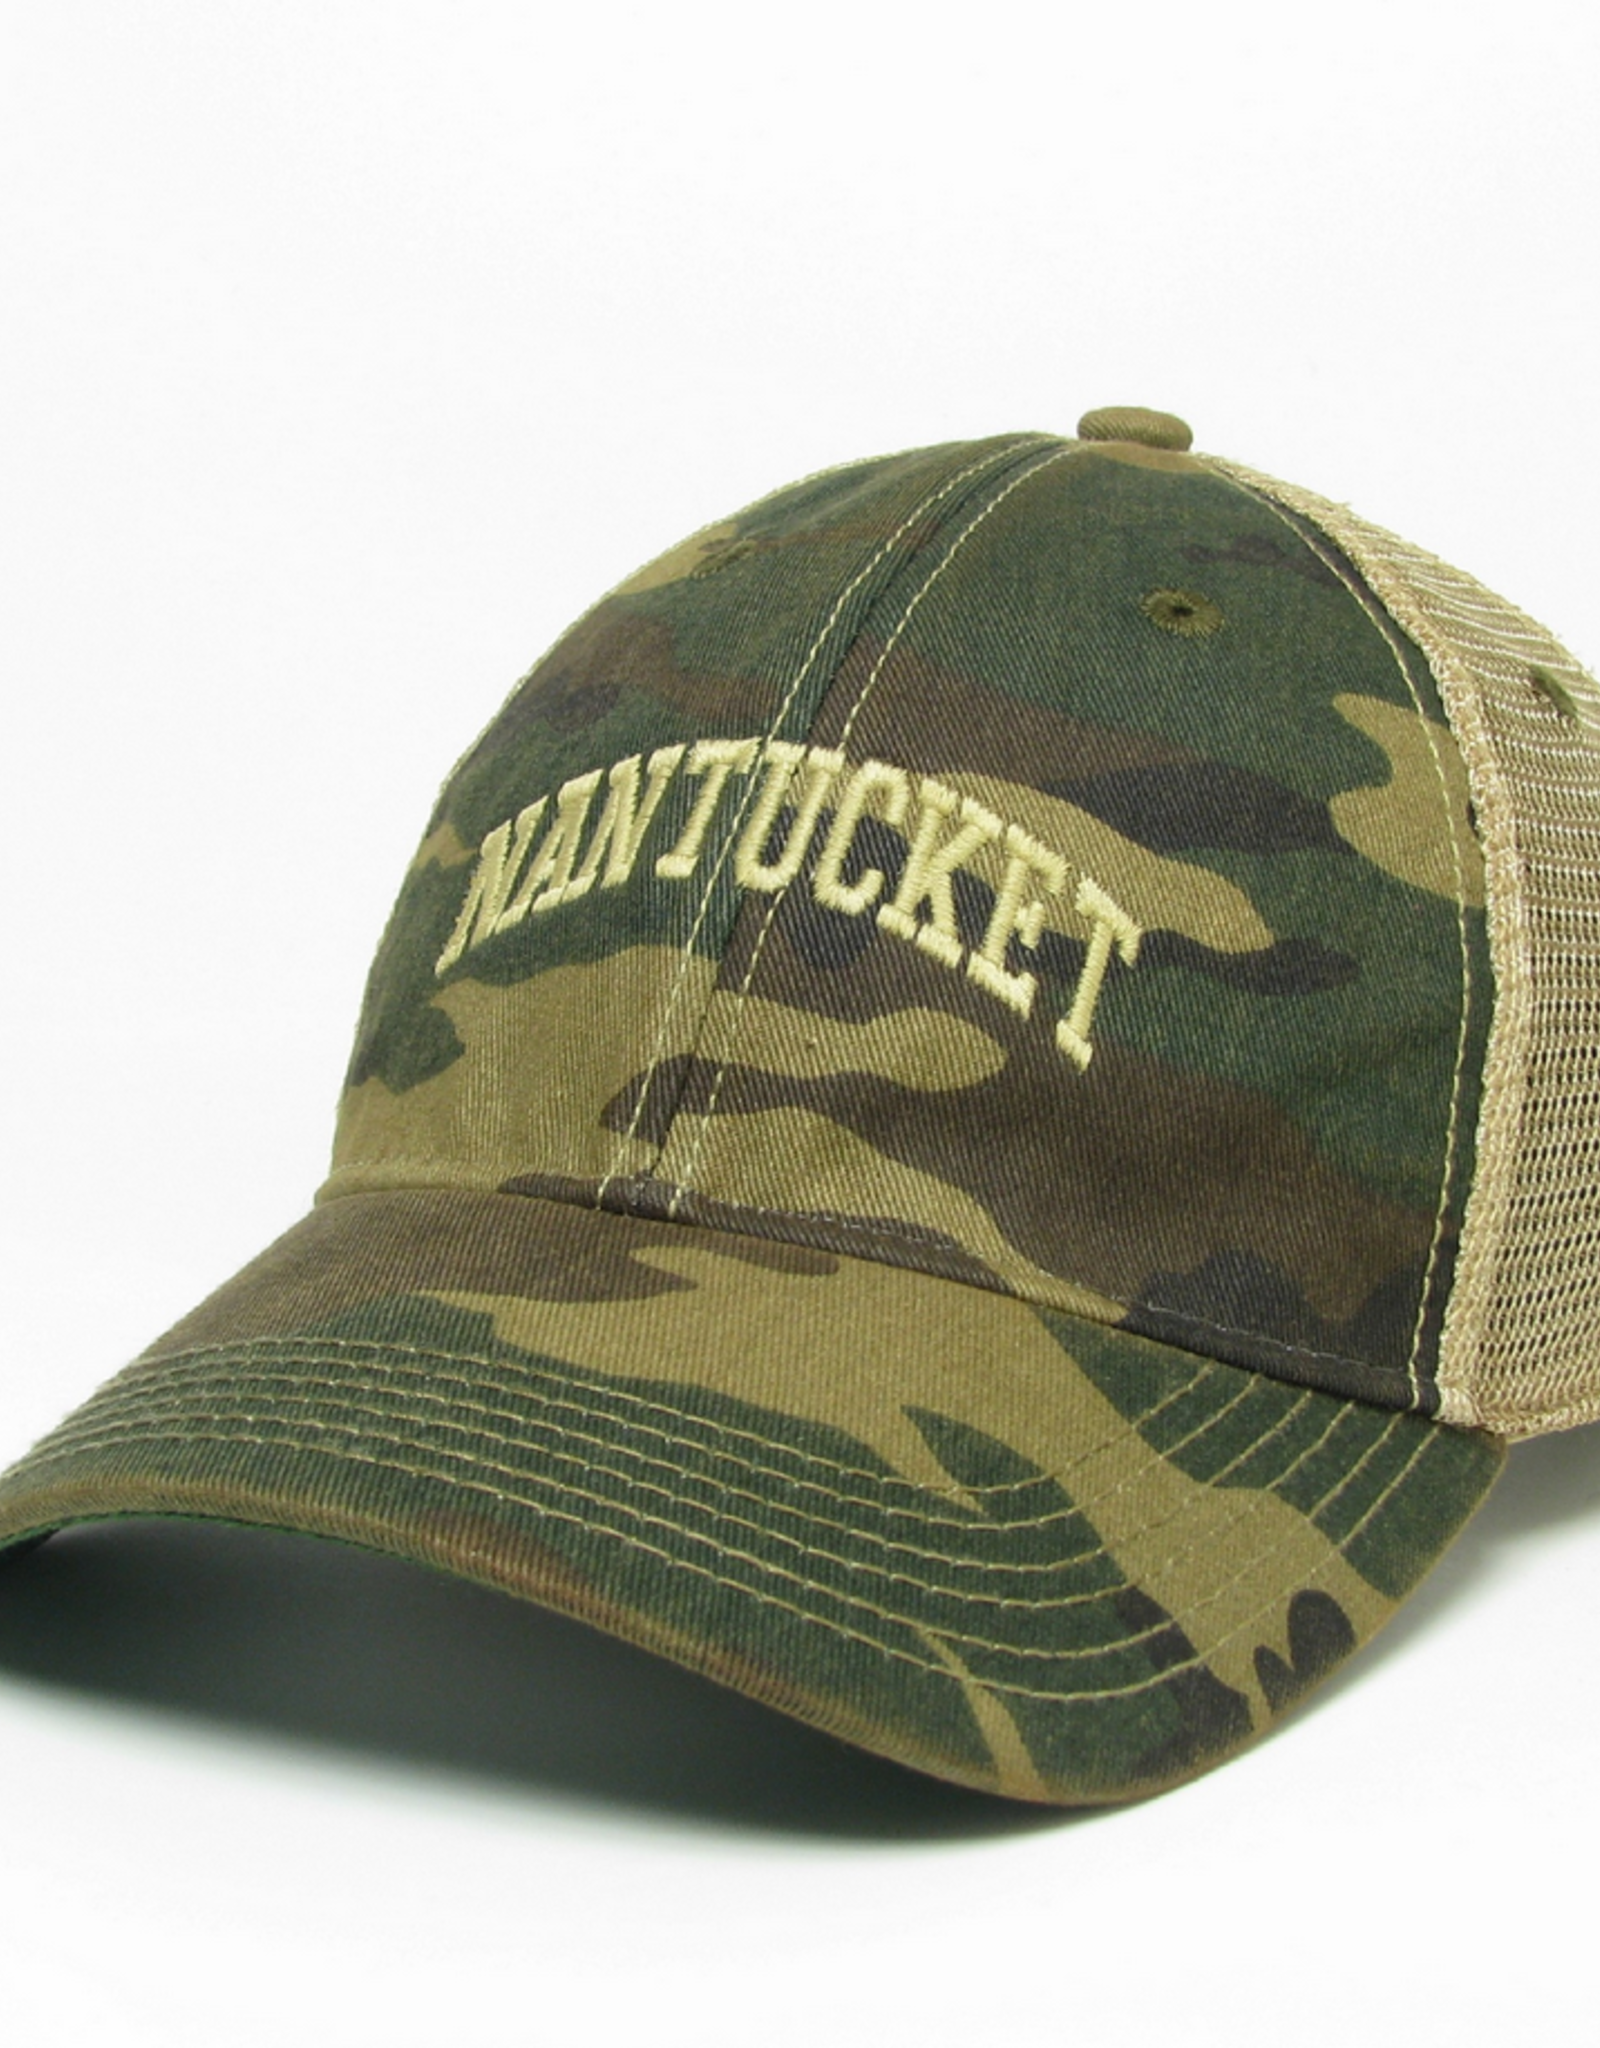 Legacy Legacy Trucker Hat ARC